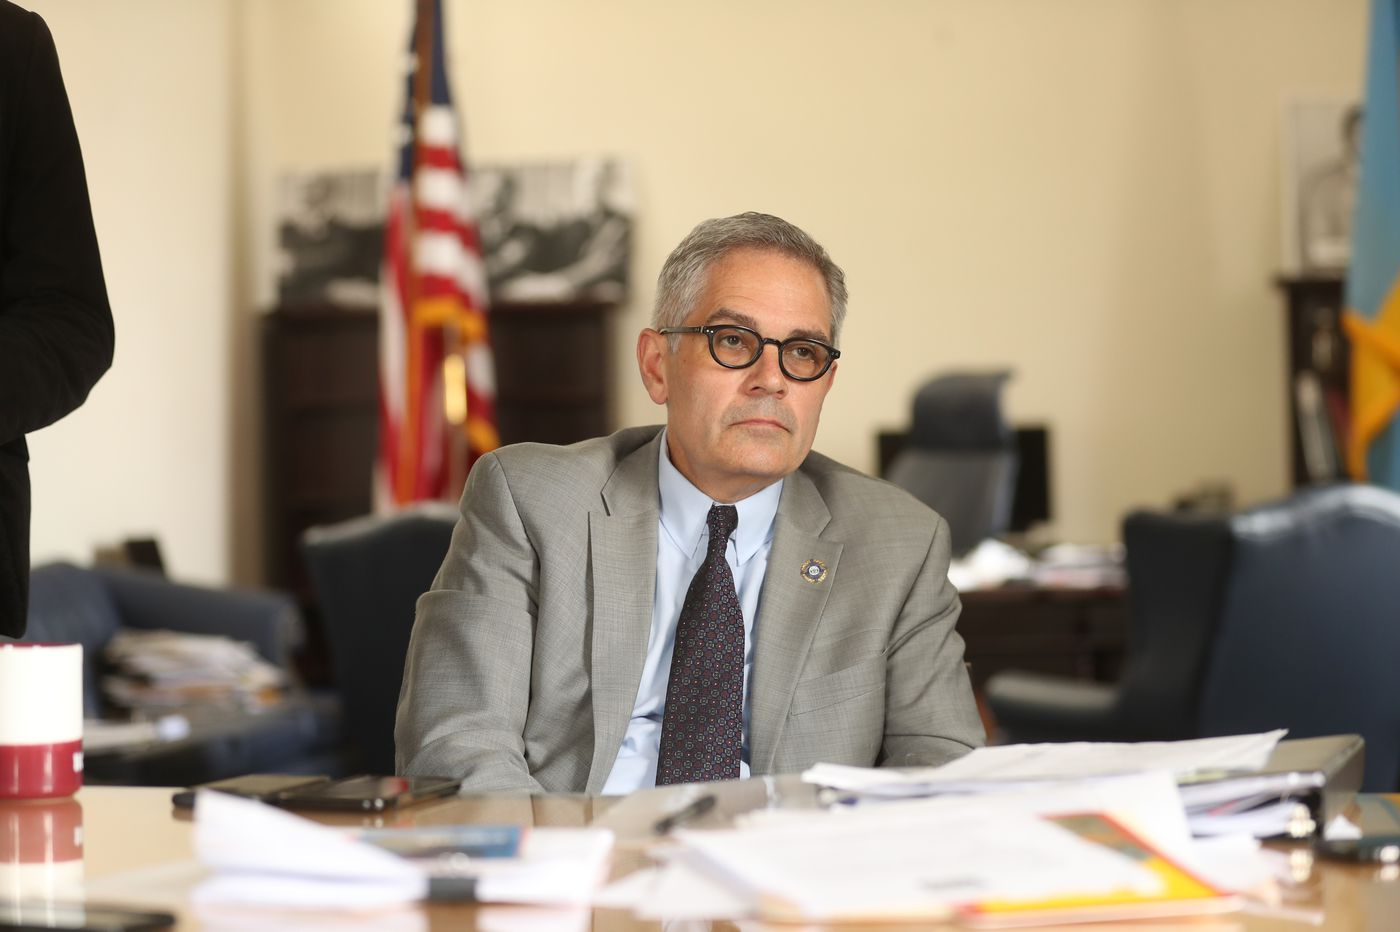 Larry Krasner's $160K-a-year senior adviser was also his creditor